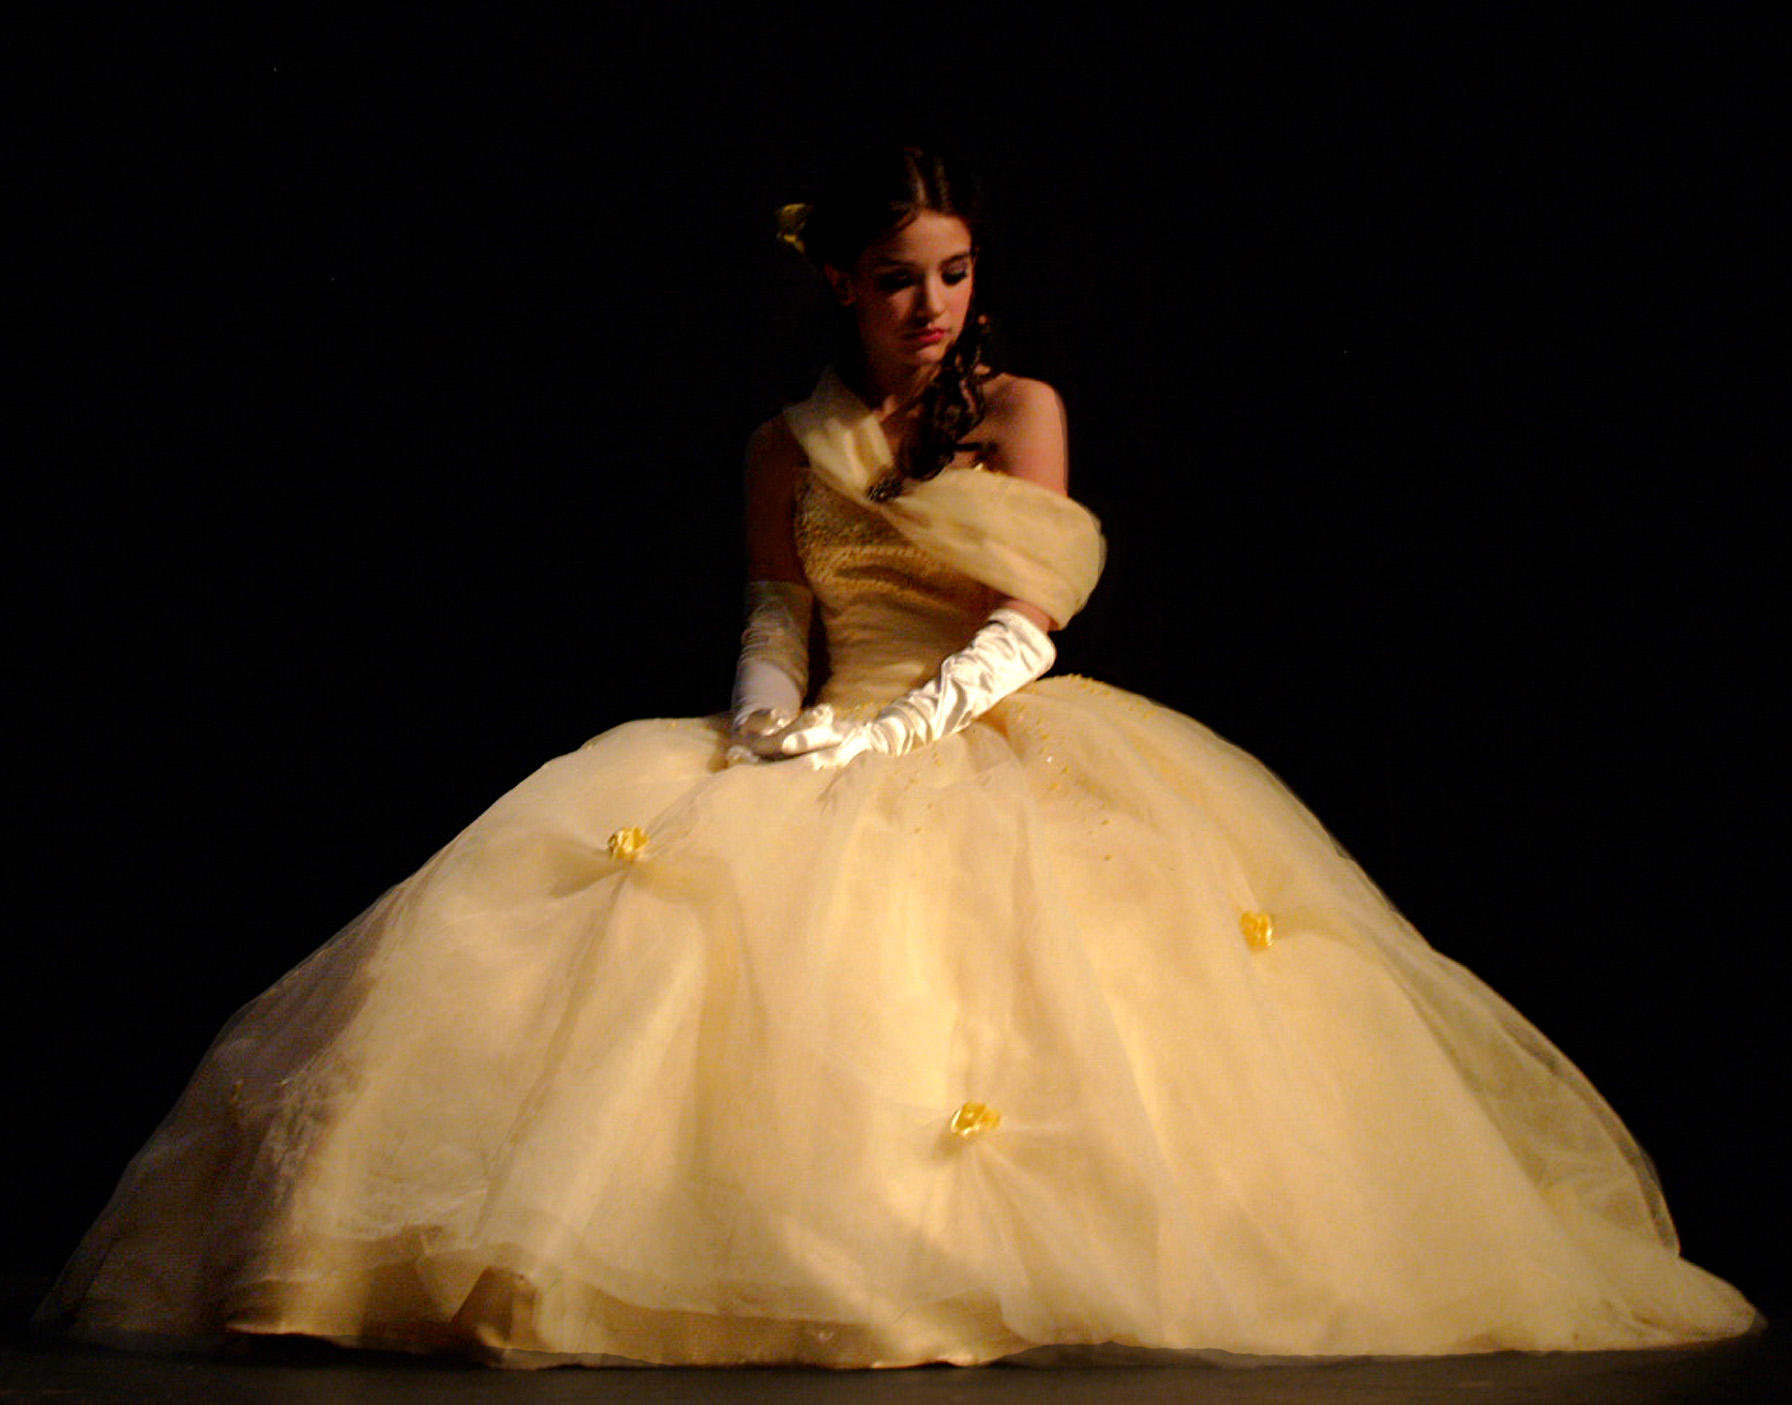 Belle contemplates by pearberry on deviantart for Wedding dress like belle from beauty and the beast